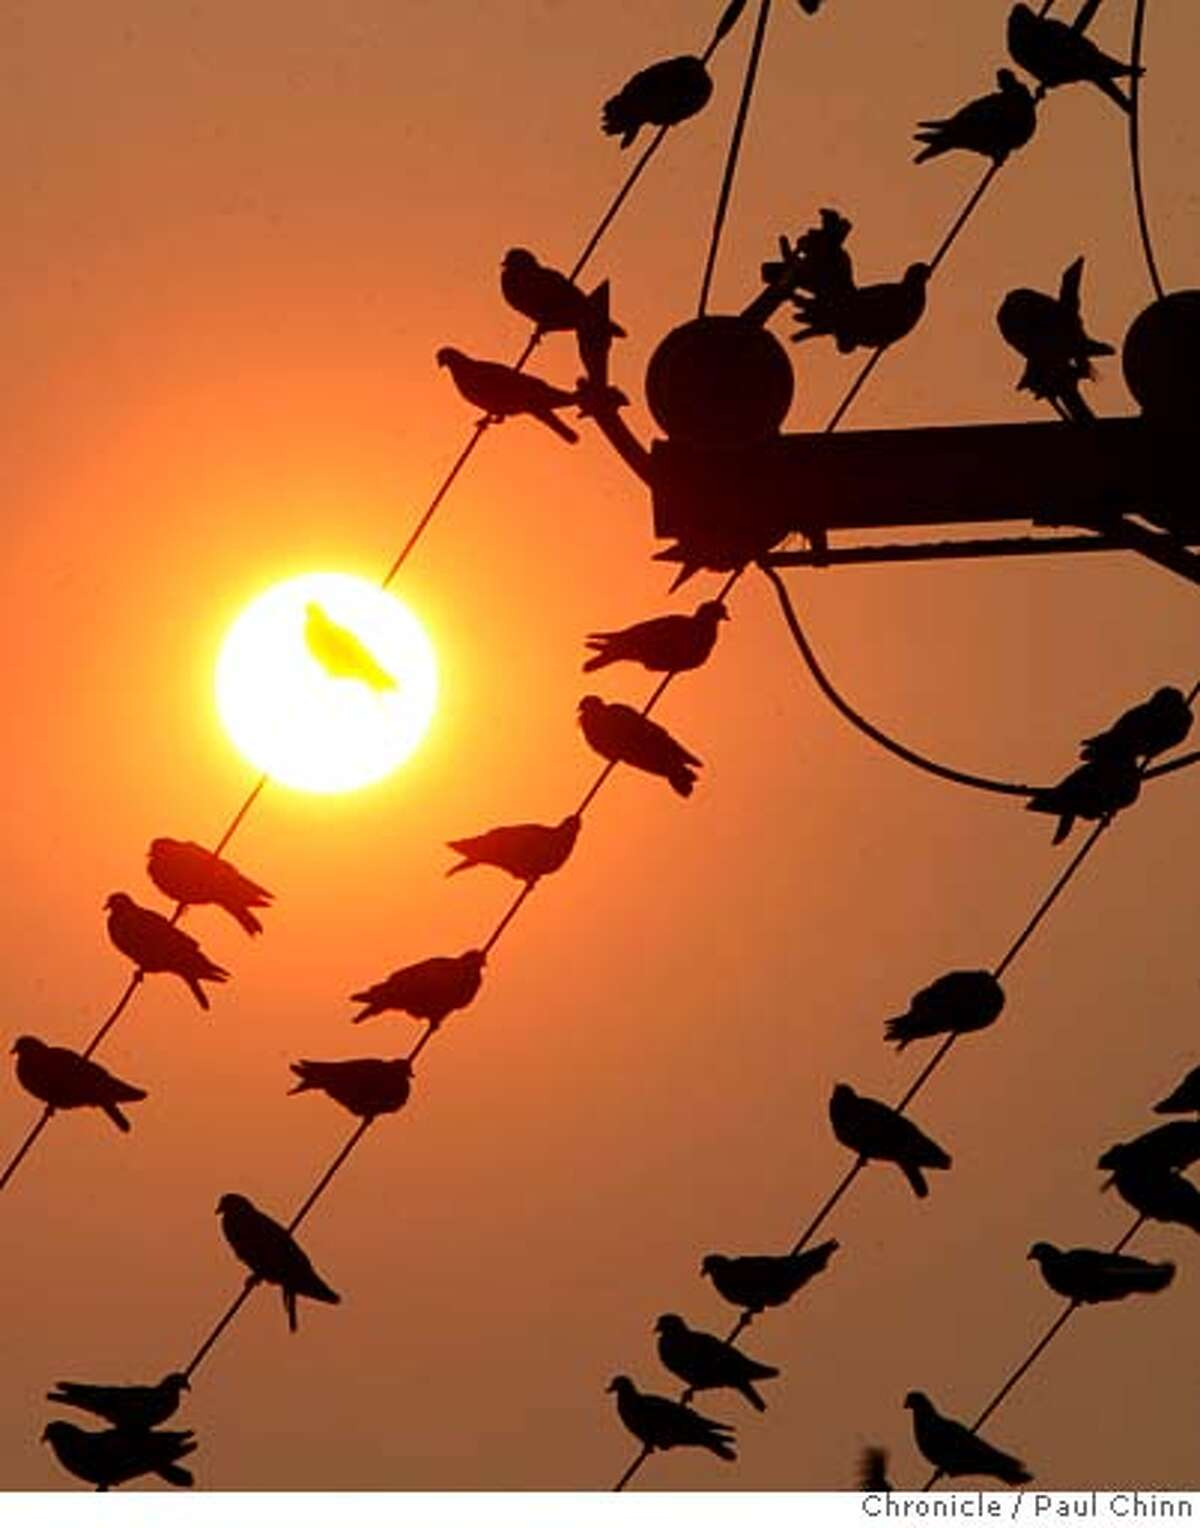 A flock of pigeons bask under an unusually red sunrise in Berkeley, Calif. on Thursday, Sept. 6, 2007. Smoke from a forest fire in southern Santa Clara County is drifting across the Bay Area creating the reddish hue. PAUL CHINN/The Chronicle